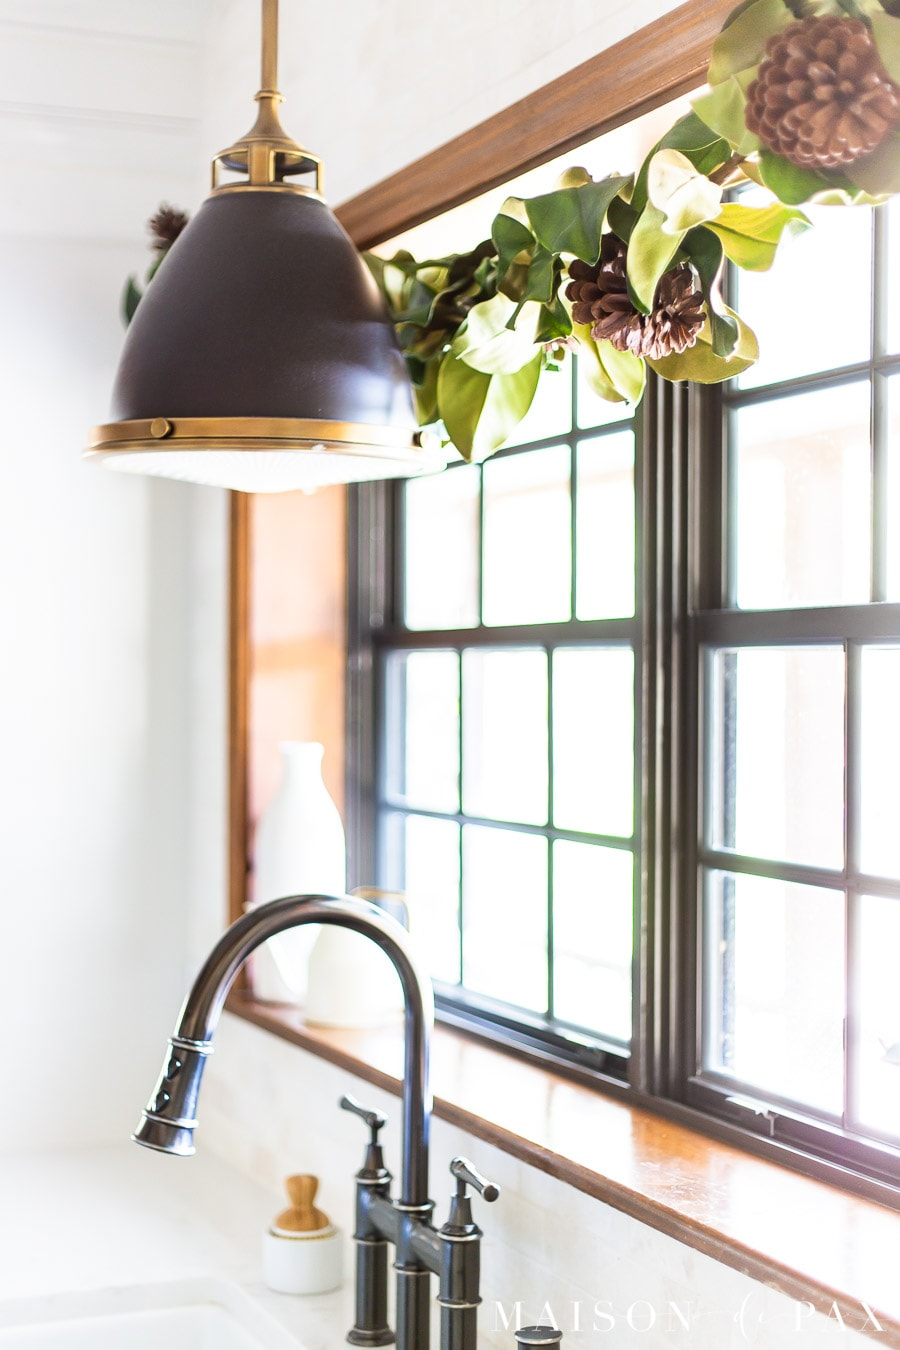 magnolia leaf garland and pendant light over farm sink | Maison de Pax